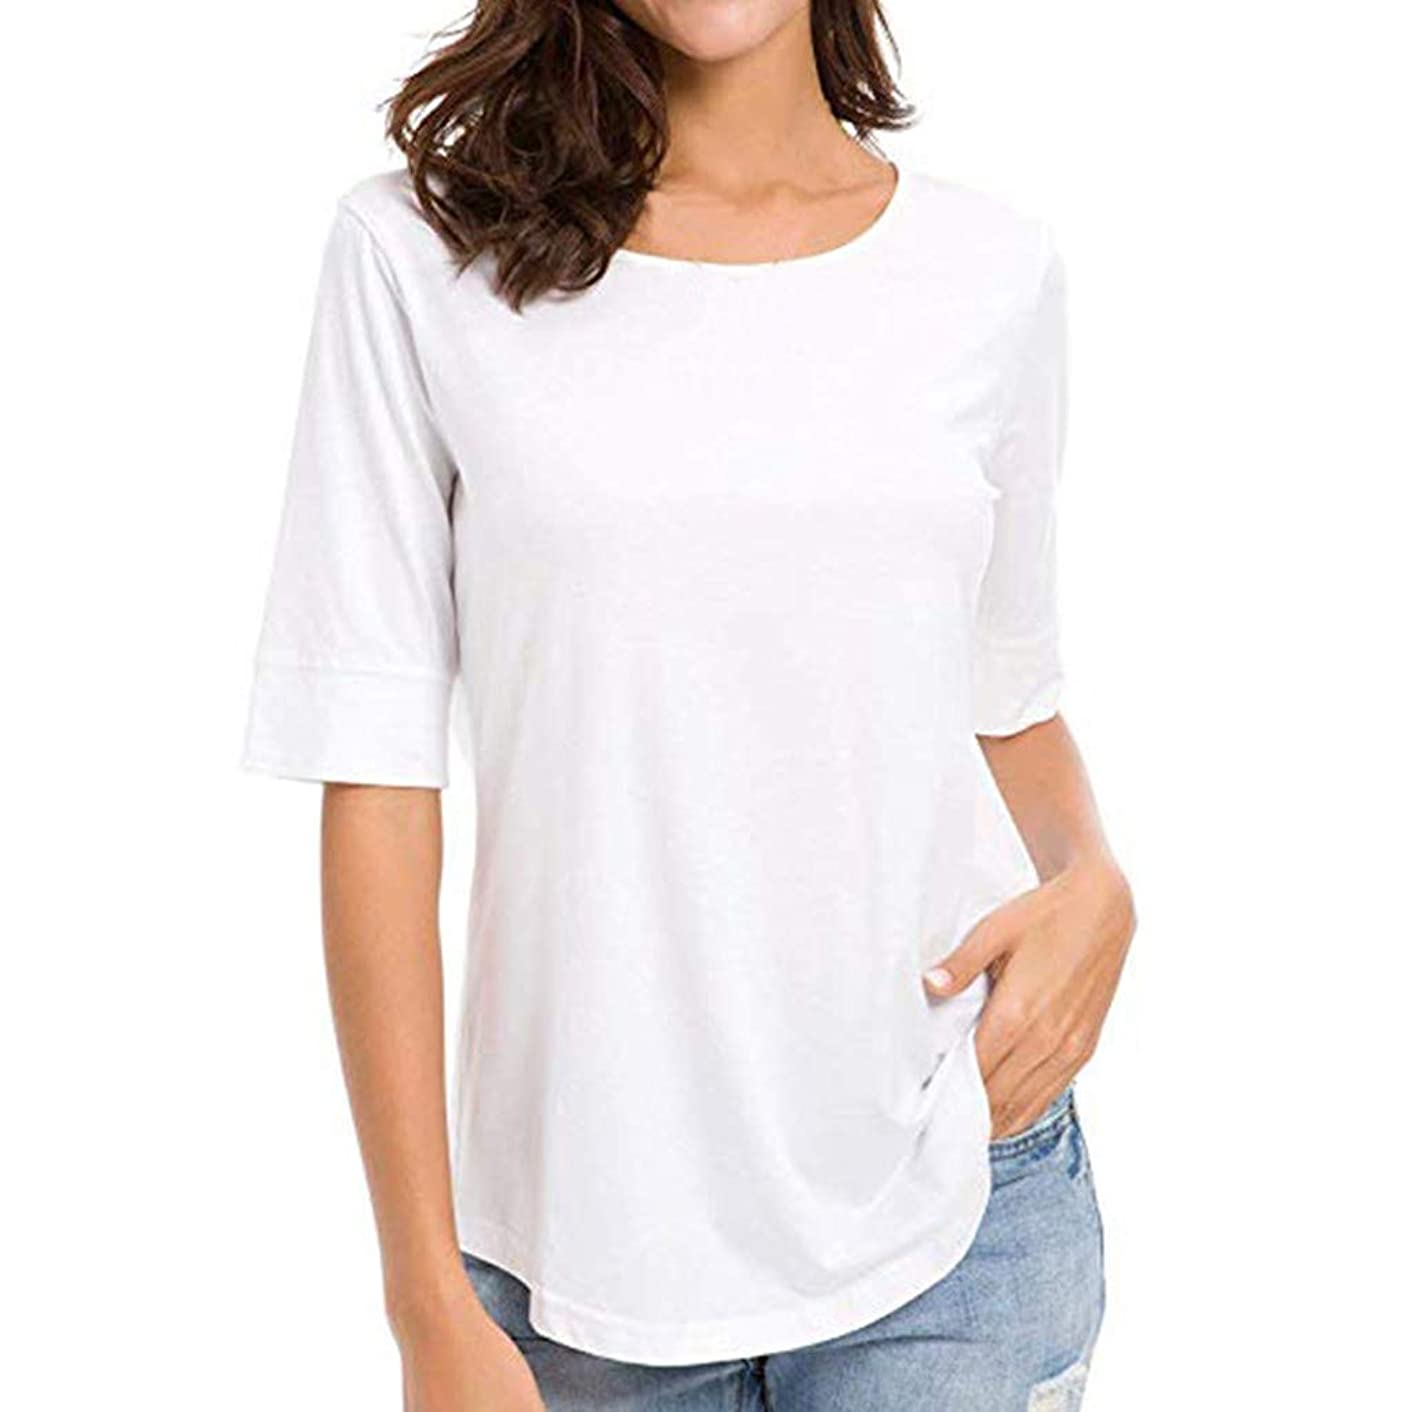 Mebamook T Shirt Womens, Women's Casual Solid Half Sleeve Blouse Basic Tunics Splice Tops